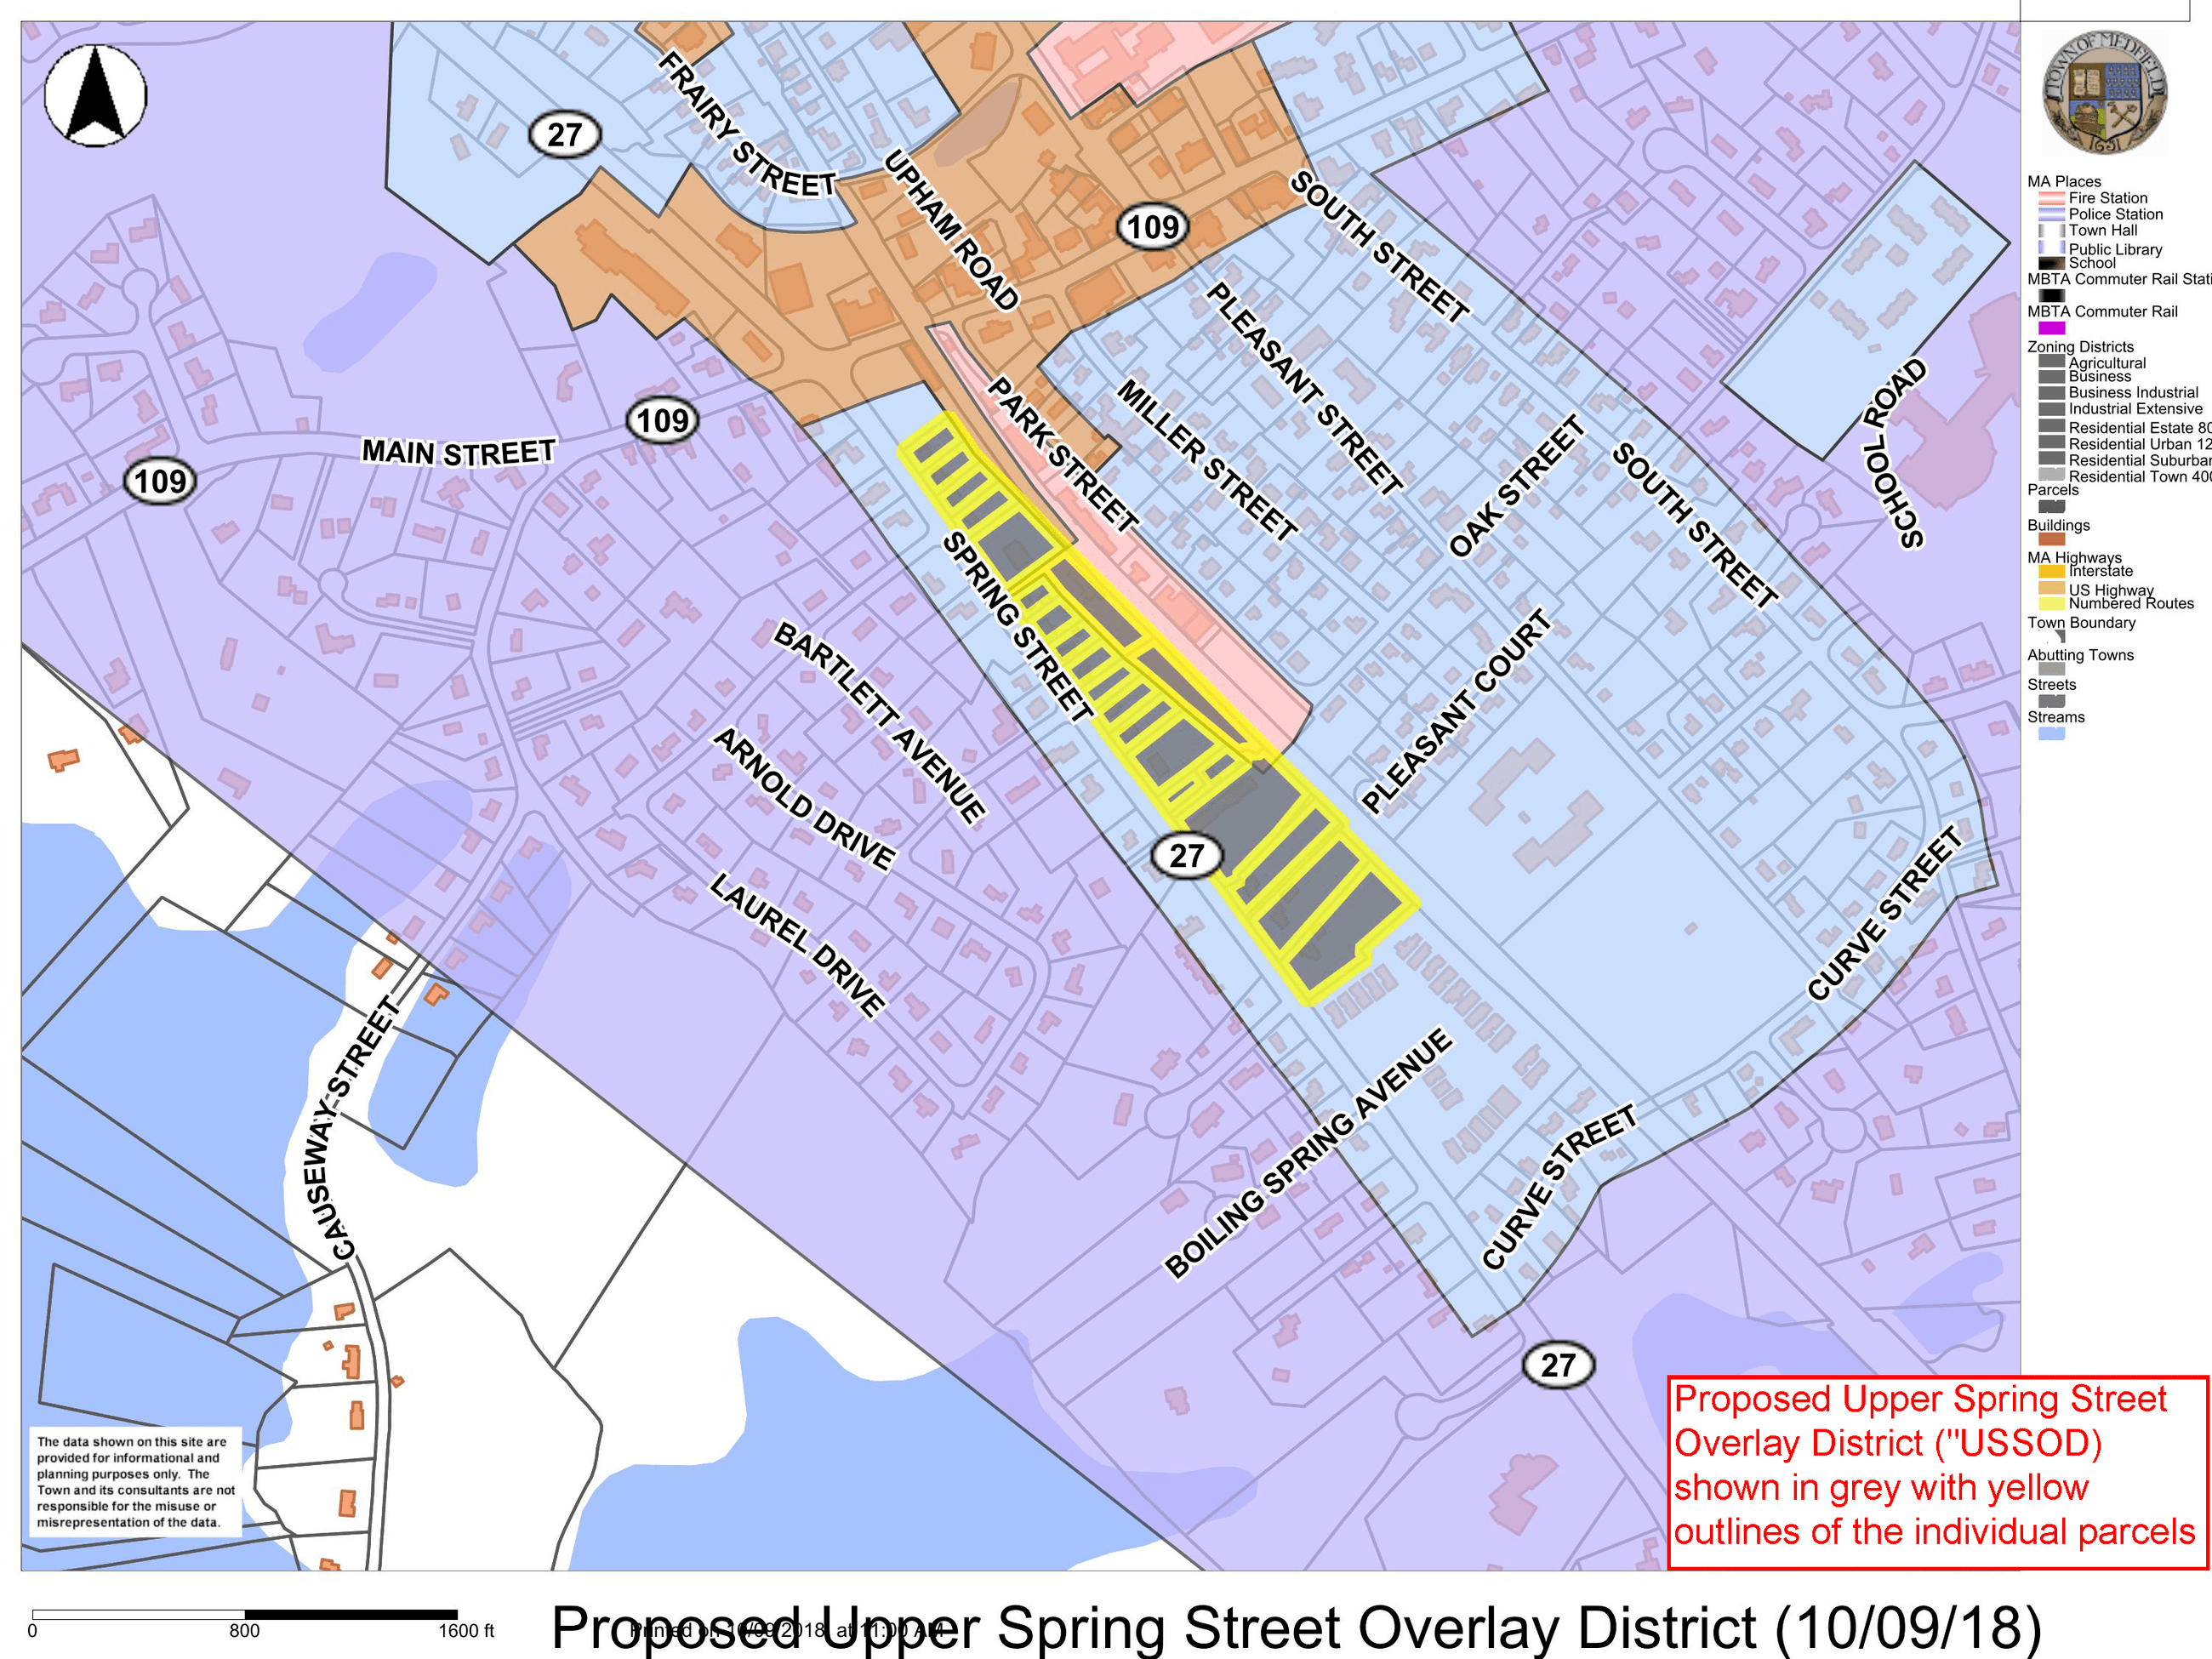 Proposed Upper Spring Street Overlay District Map - 10-09-18